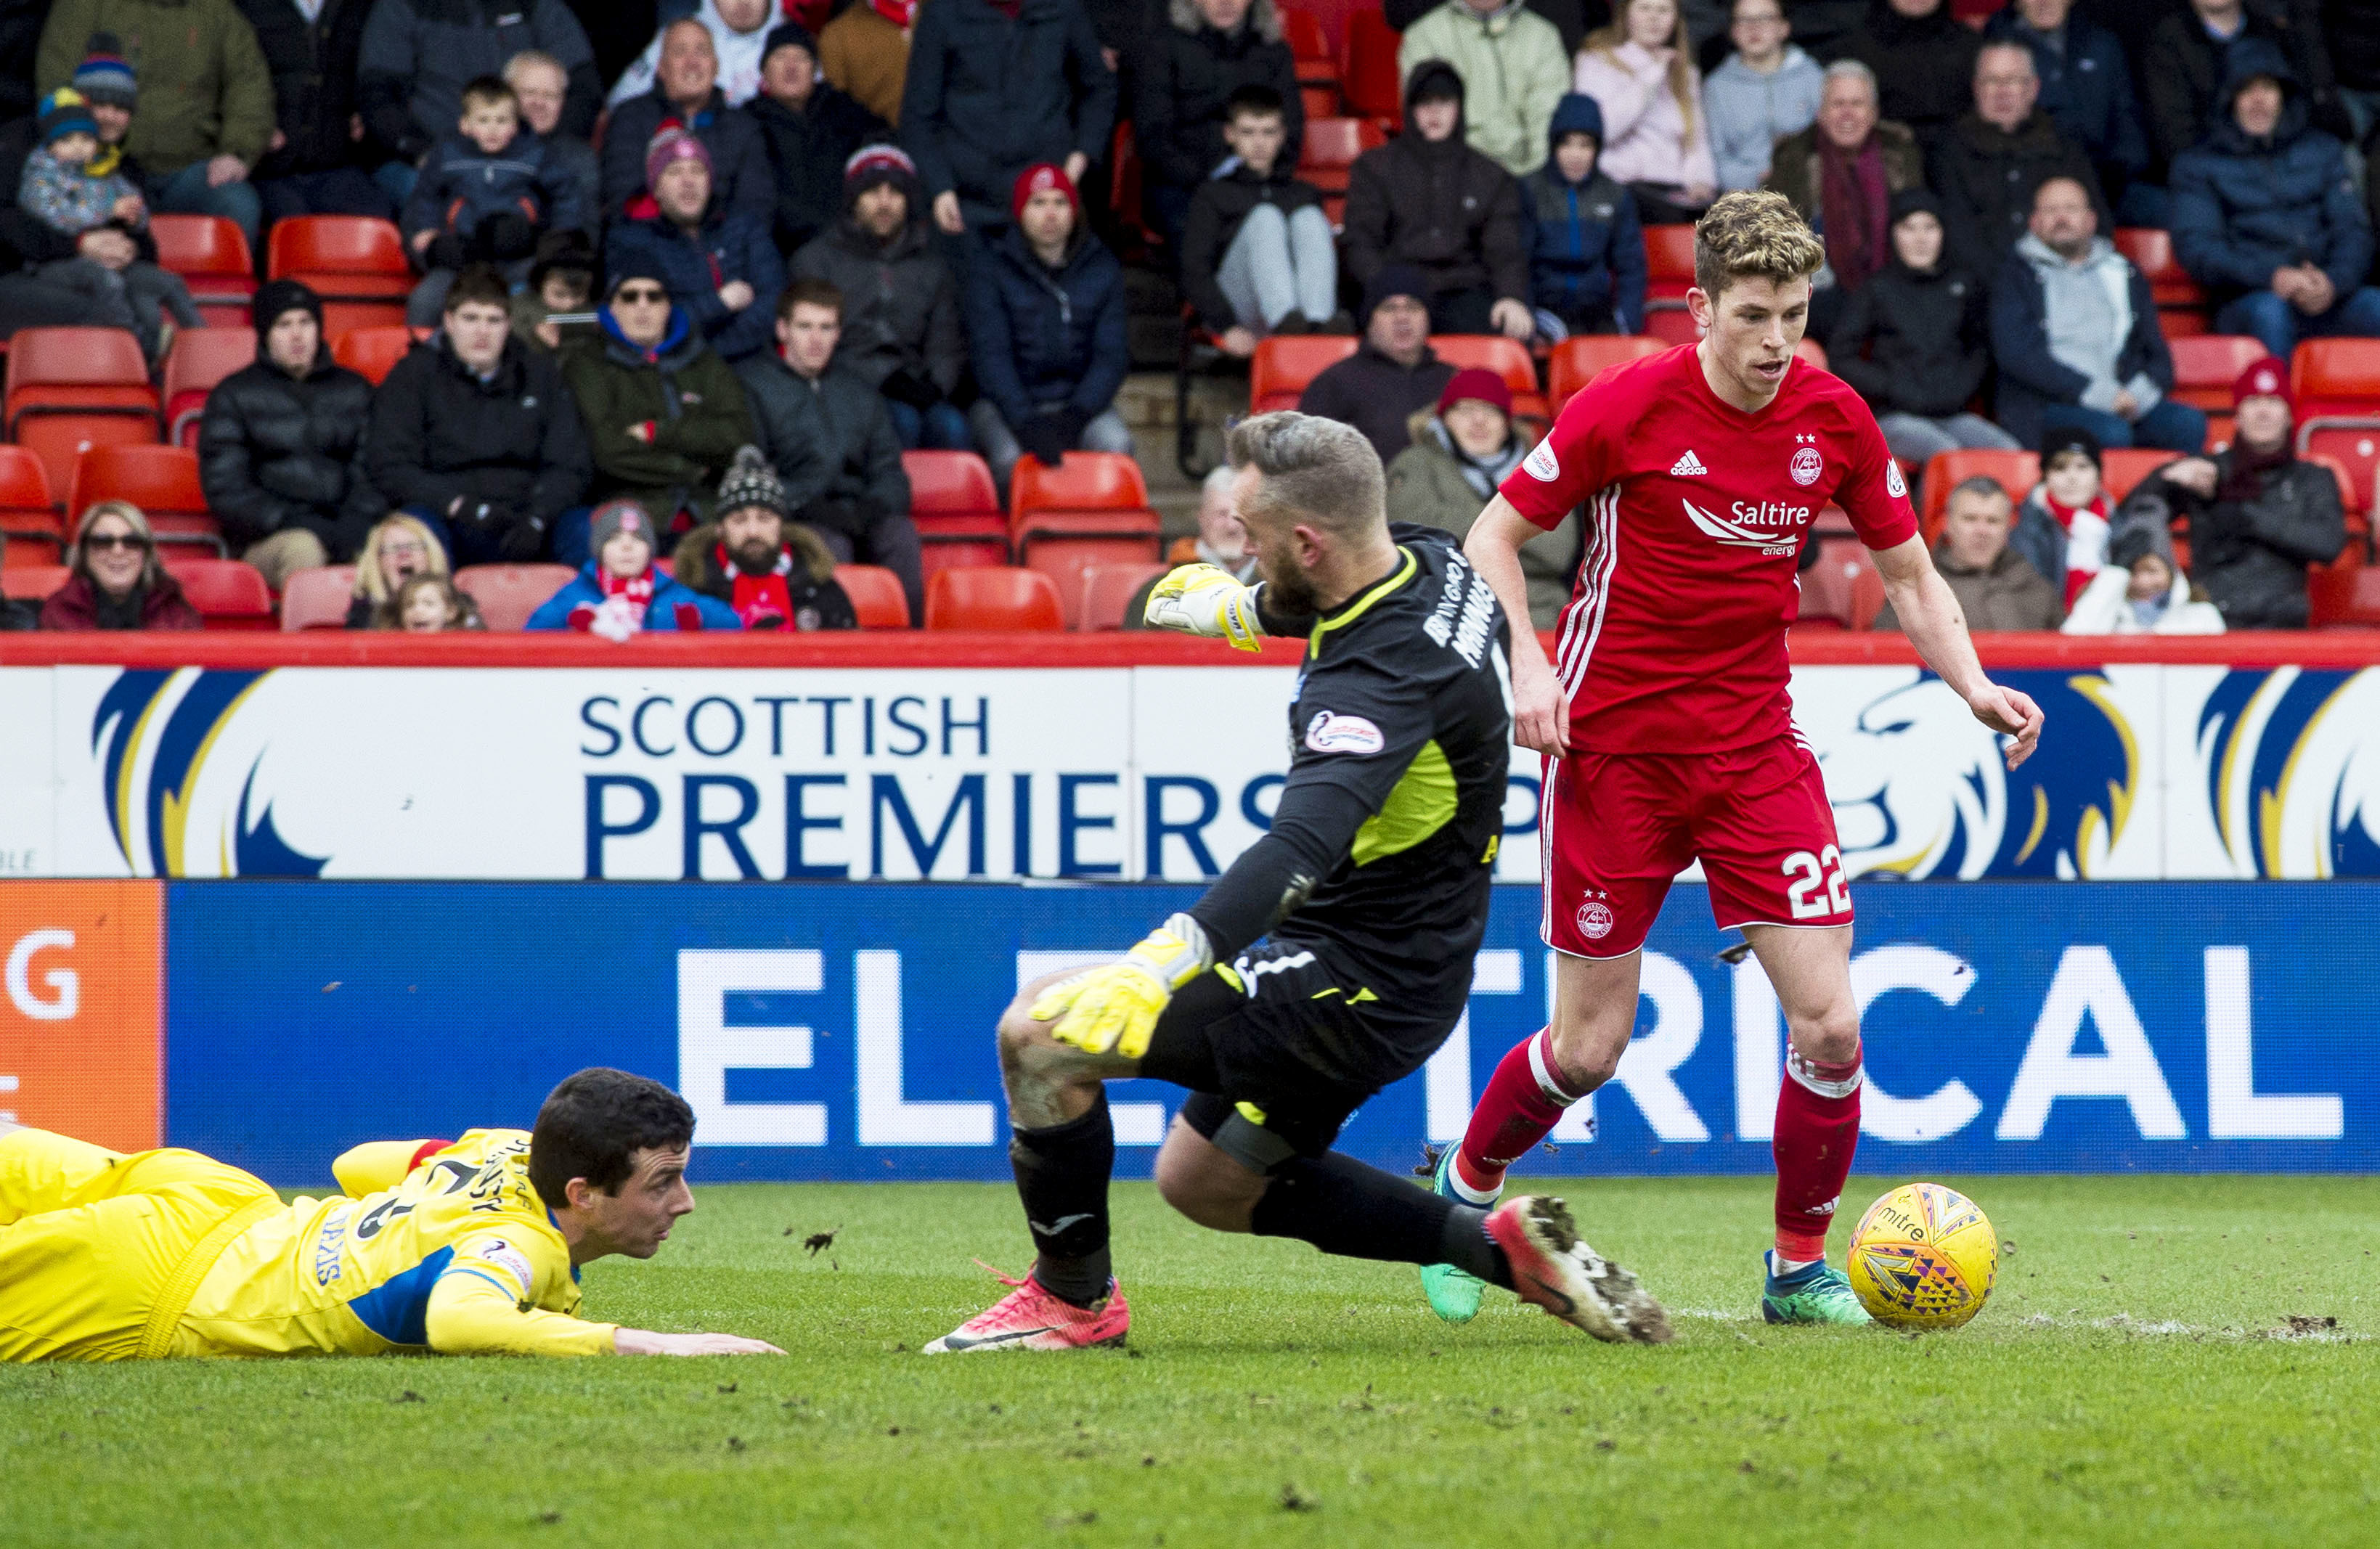 Aberdeen's Ryan Christie rounds the goalkeeper to score and make it 1-0 against St Johnstone.